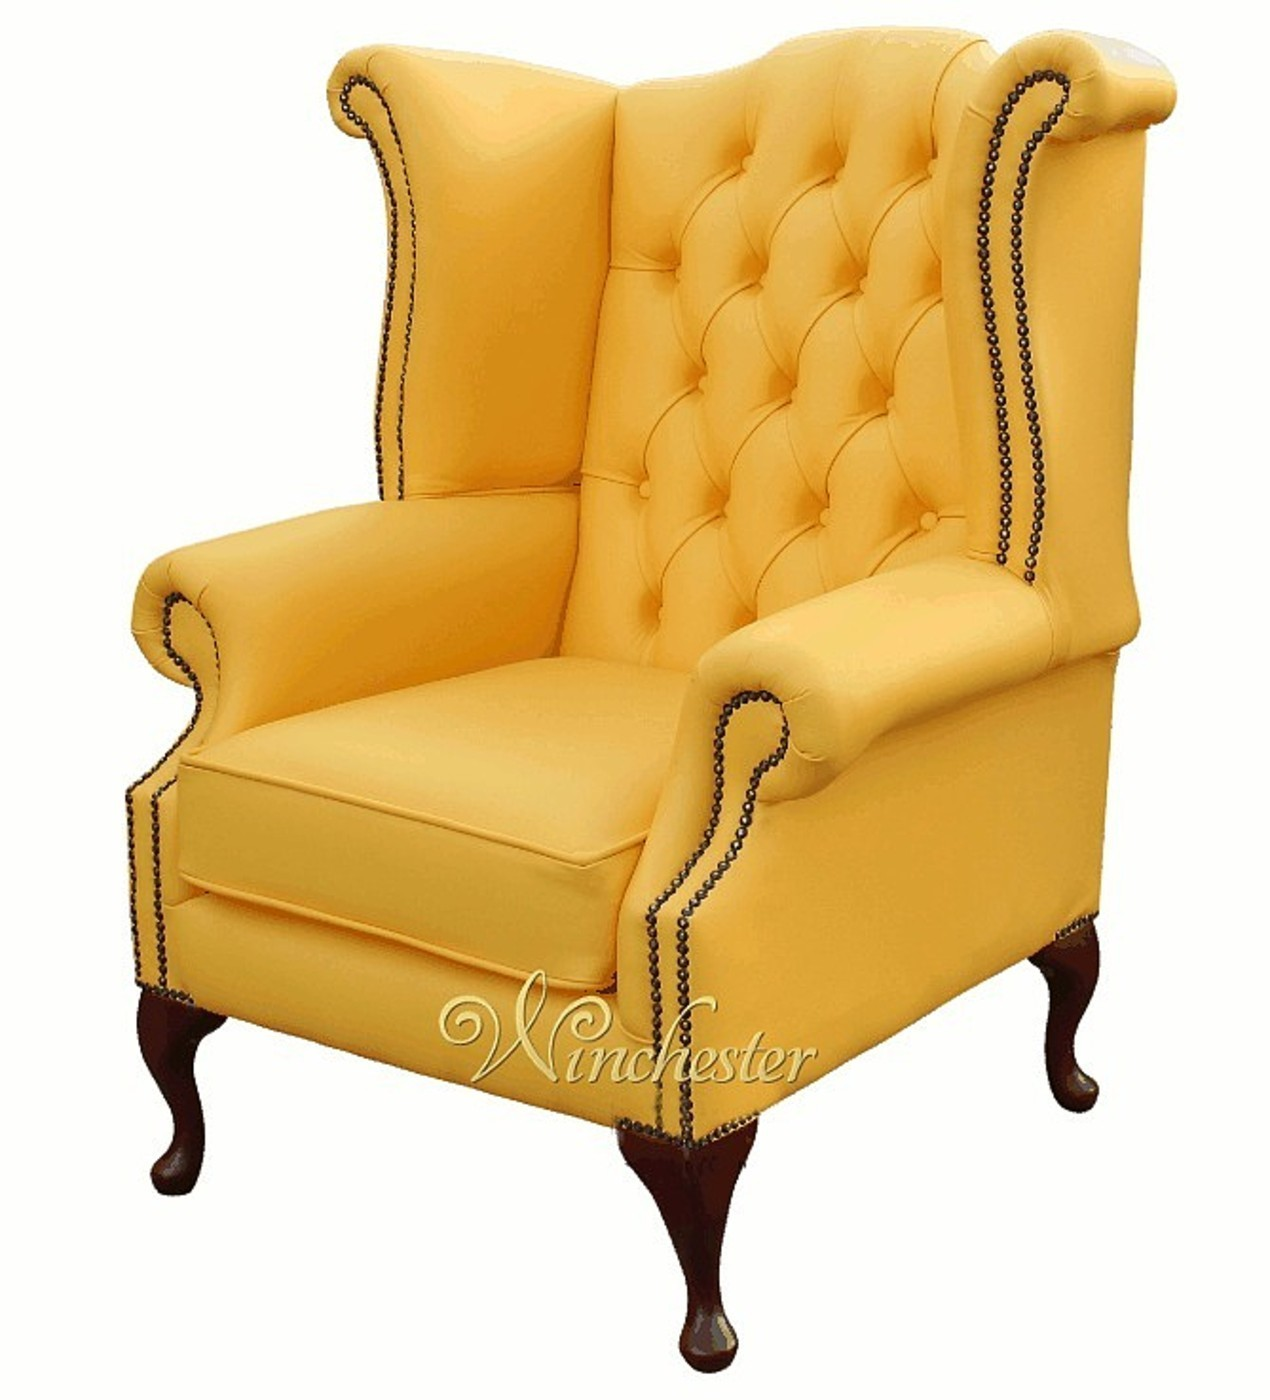 ... Chesterfield Queen Anne High Back Wing Chair Banana  ...